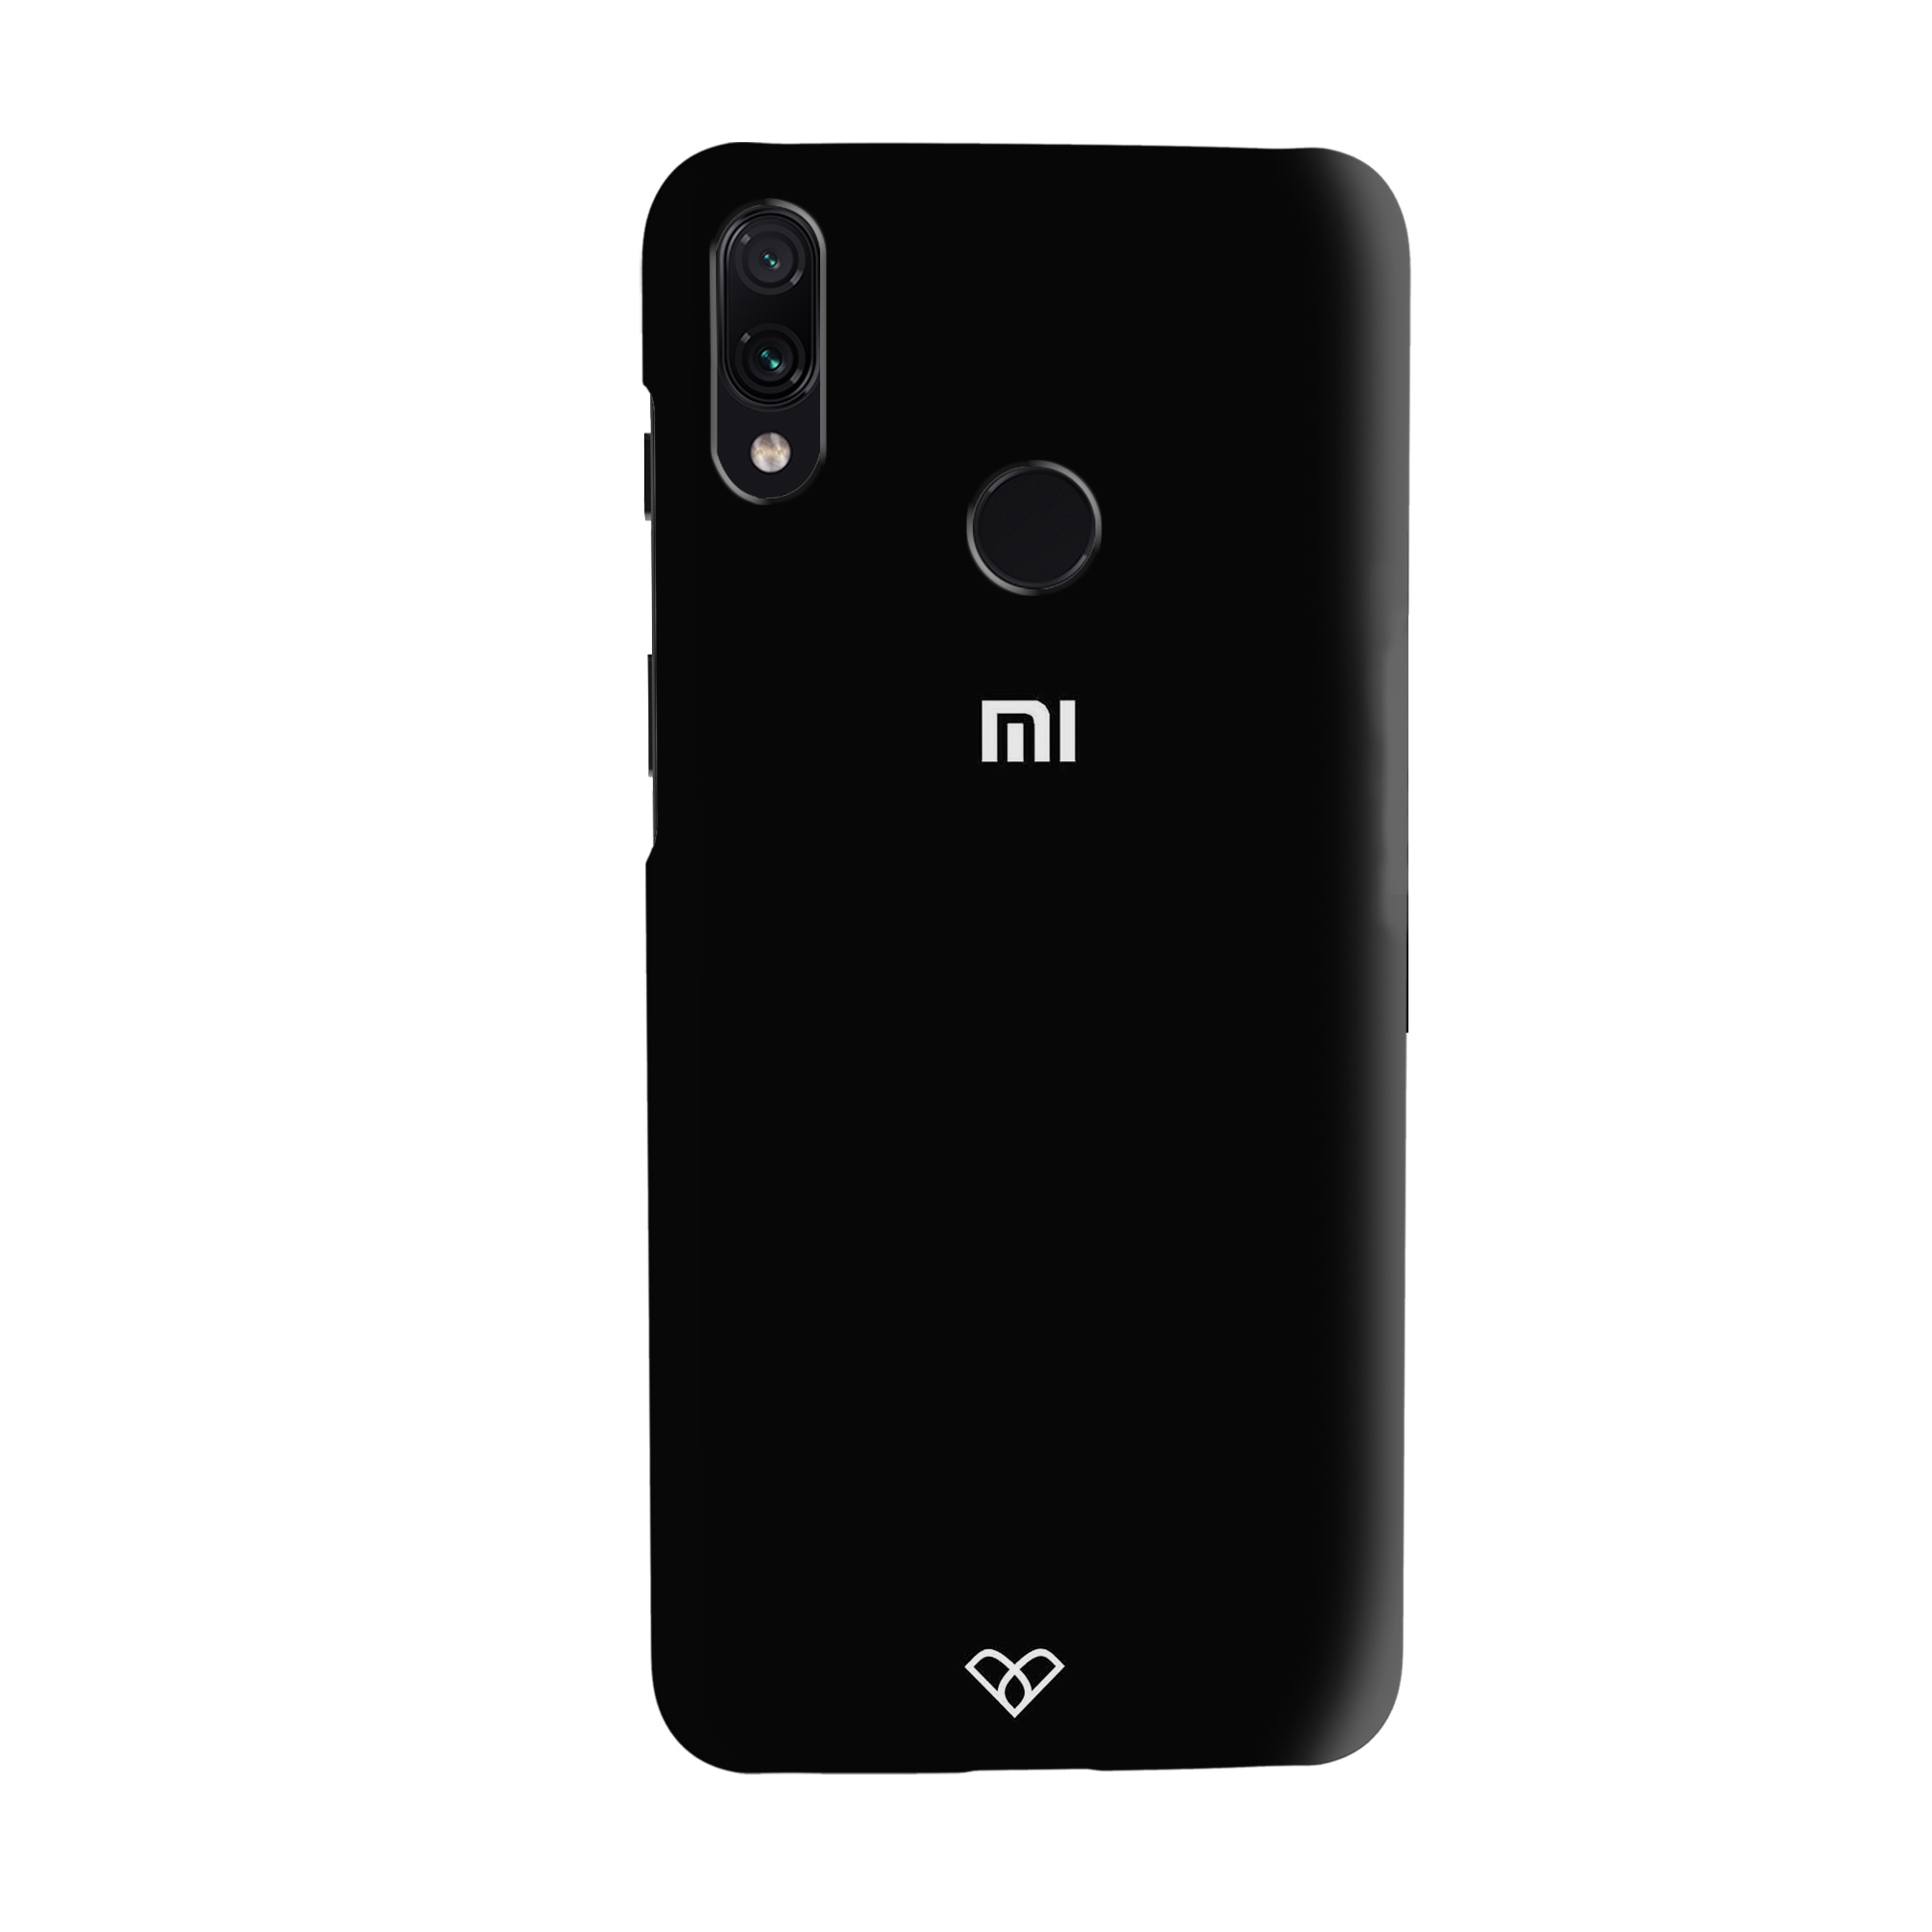 Jet Black Slim Case And Cover For Redmi Note 7 Pro